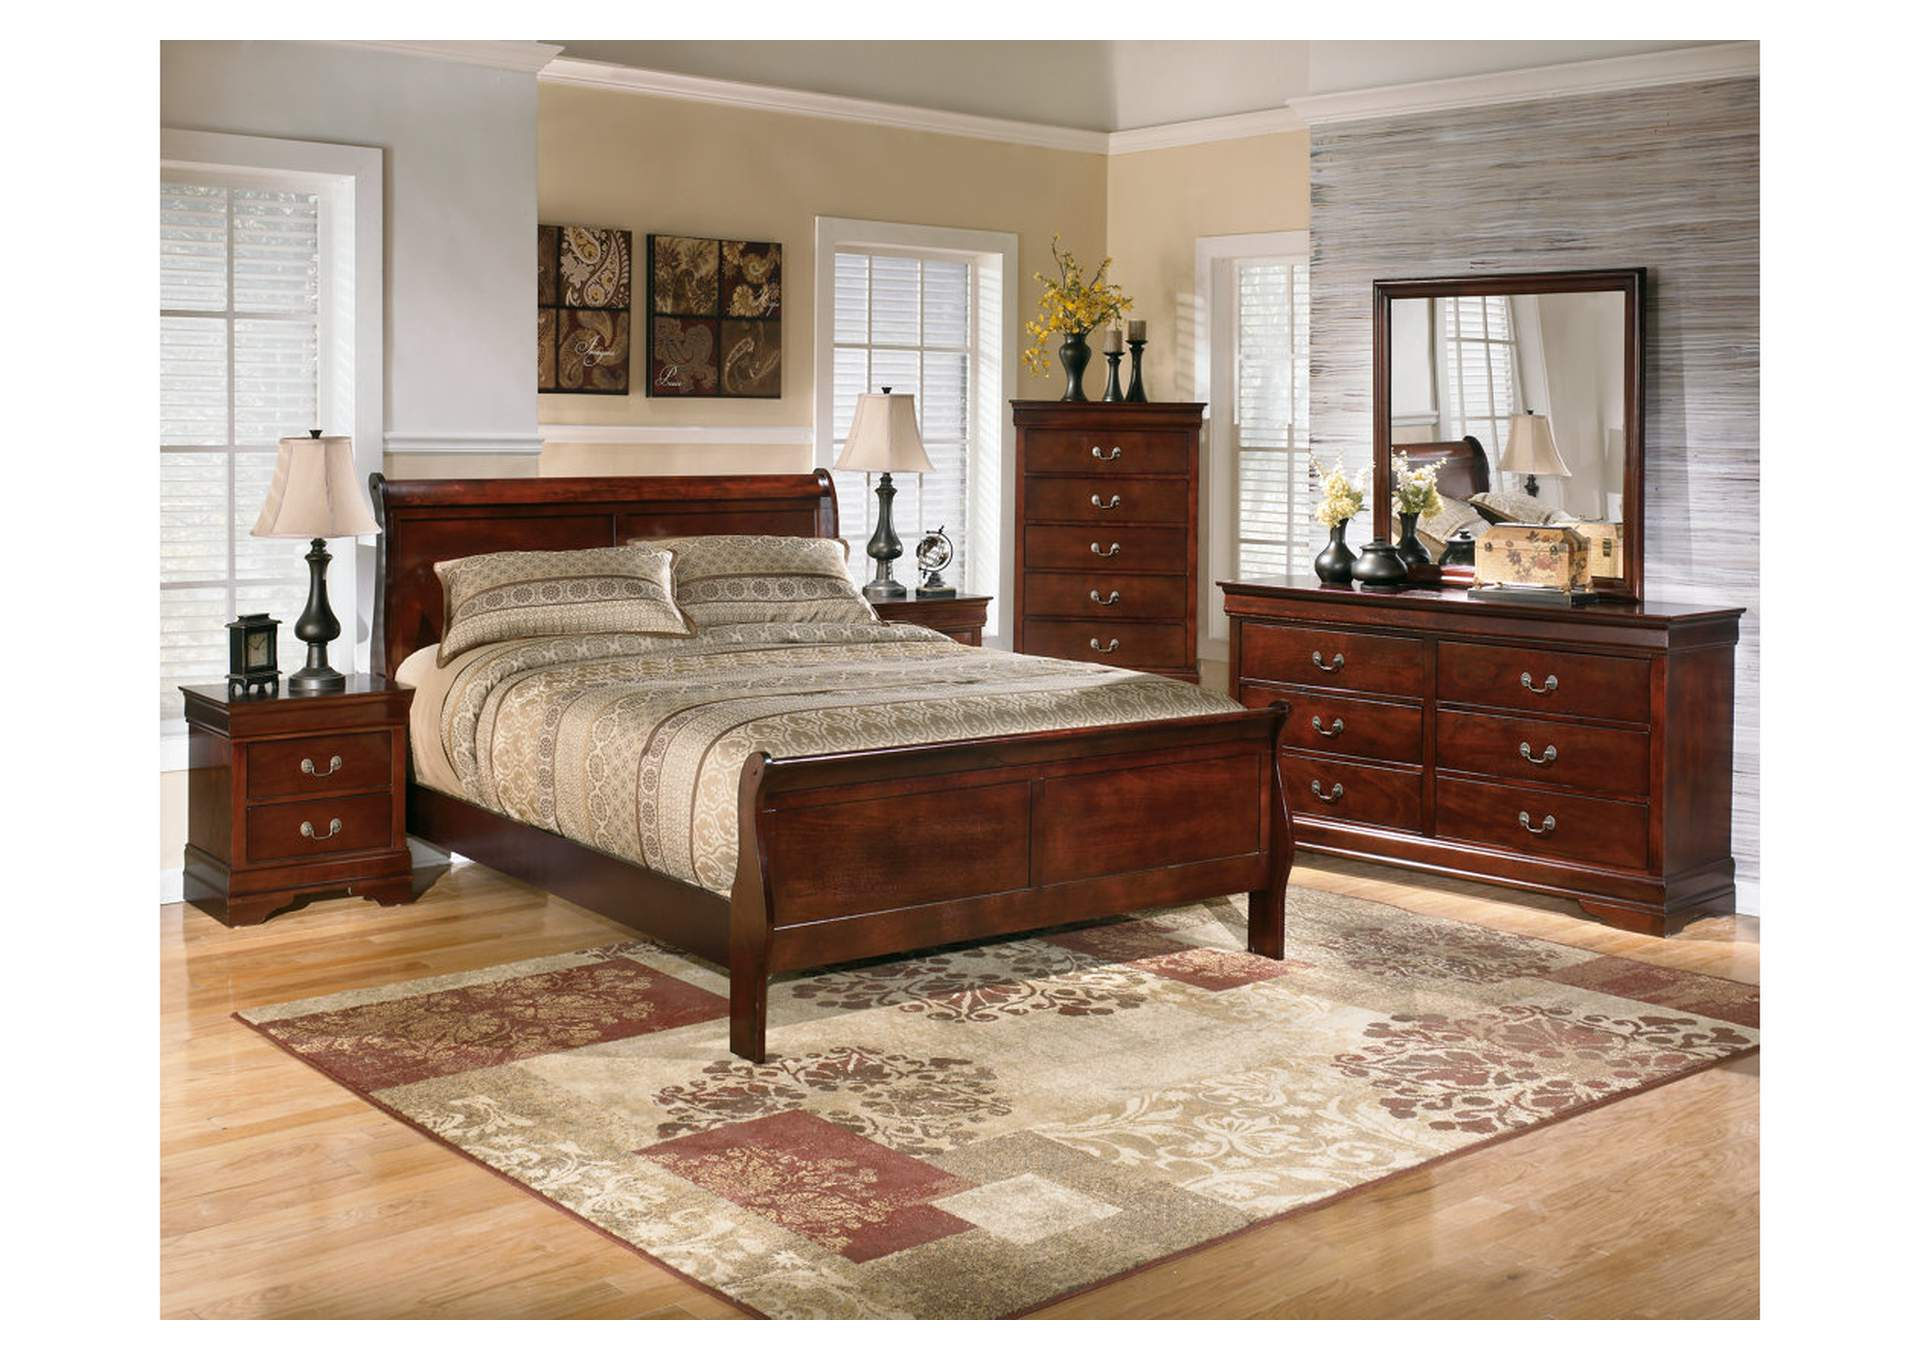 Alisdair Queen Sleigh Bed w/Dresser, Mirror, Drawer Chest & 2 Nightstands,Signature Design By Ashley